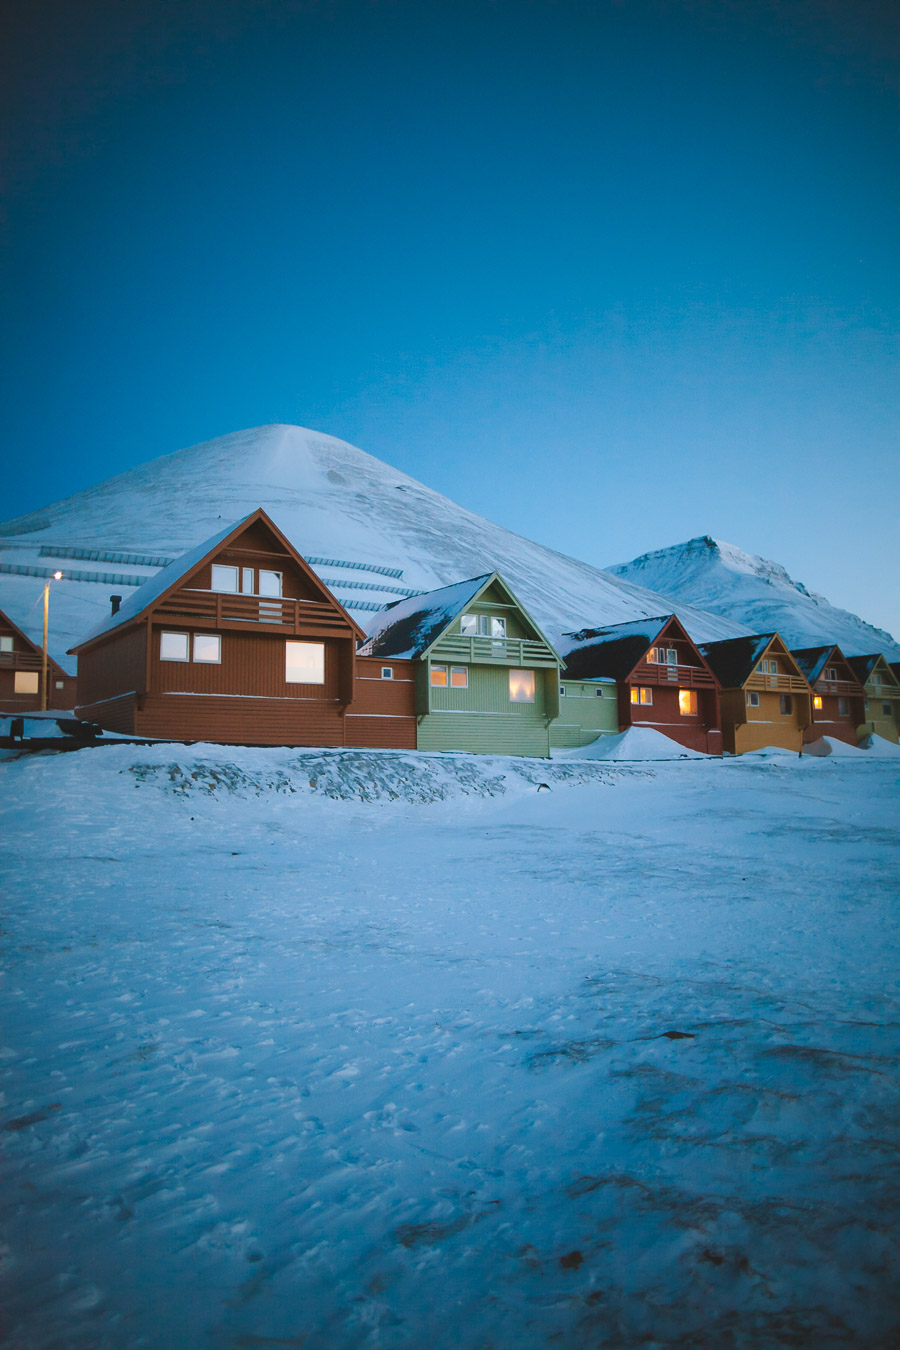 Colourful houses at night in Longyearbyen